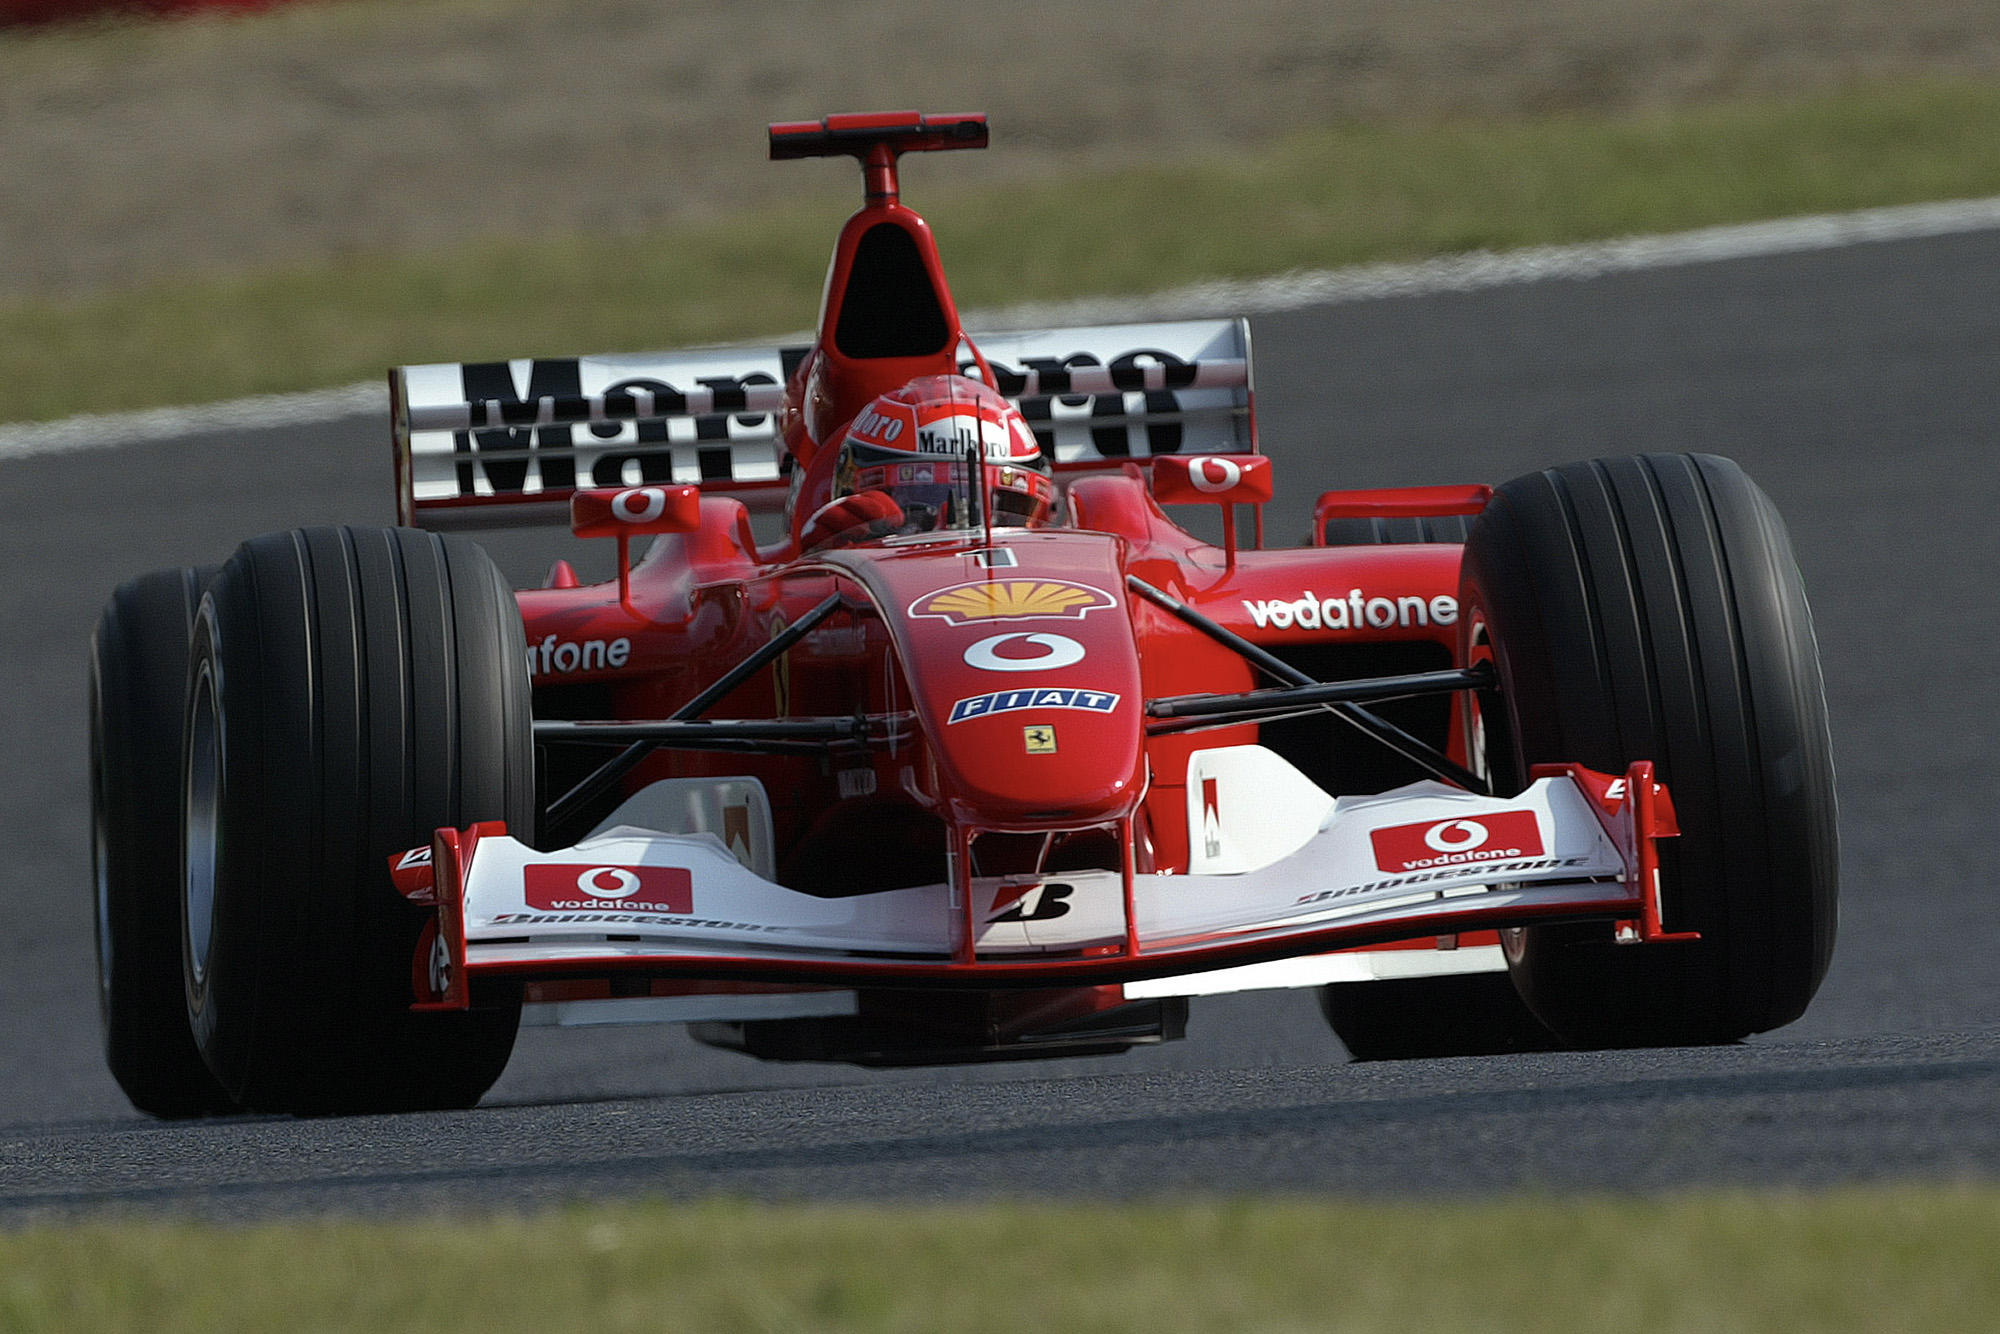 Schumacher S F2002 To Be Auctioned At Abu Dhabi F1 Gp Motor Sport Magazine